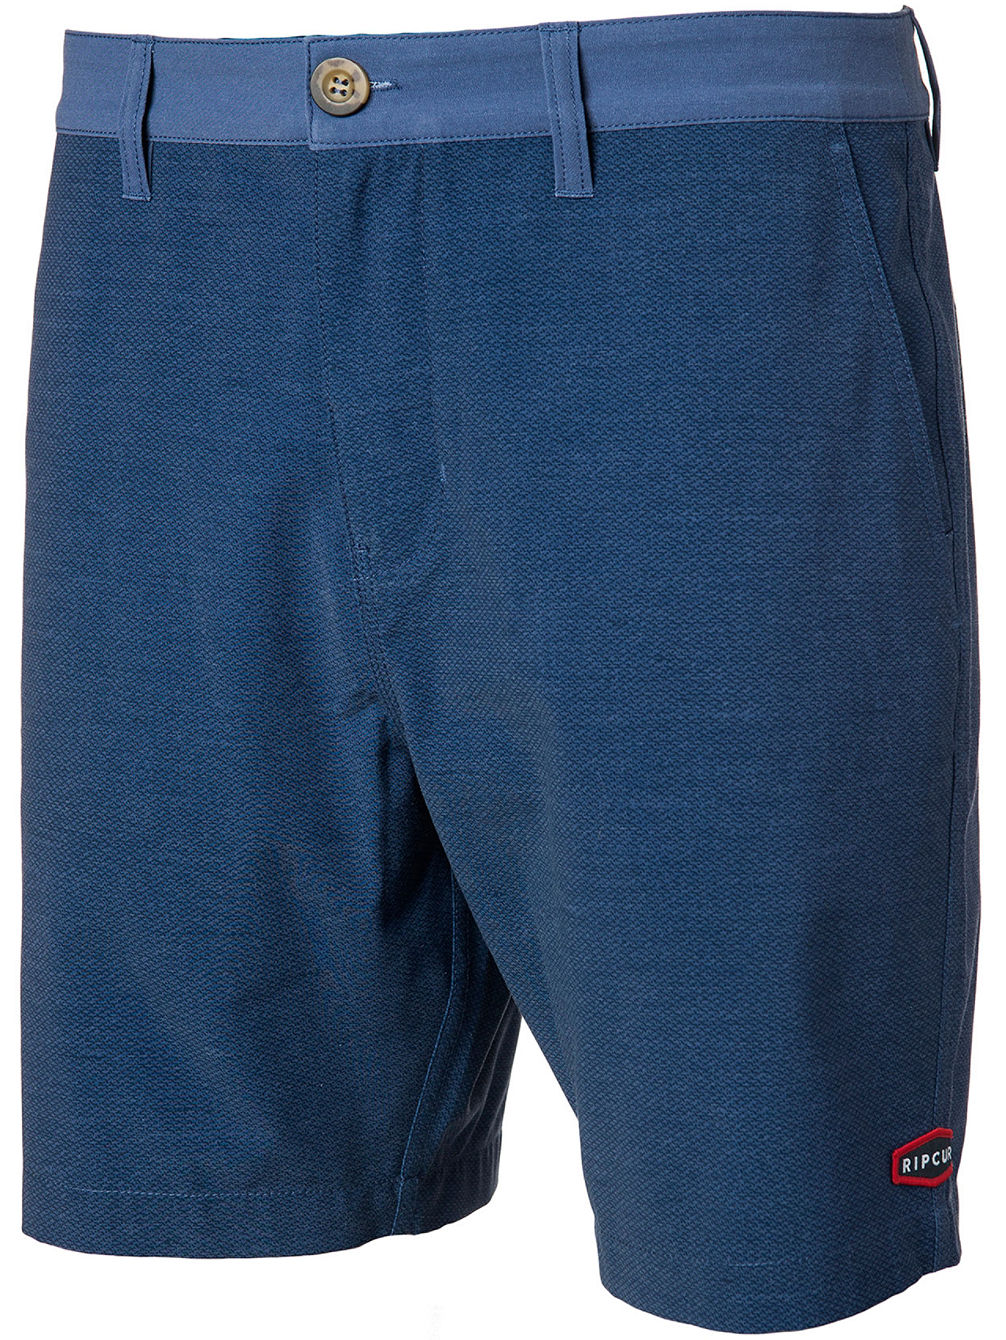 "Trips Boardwalk 18"" Shorts"